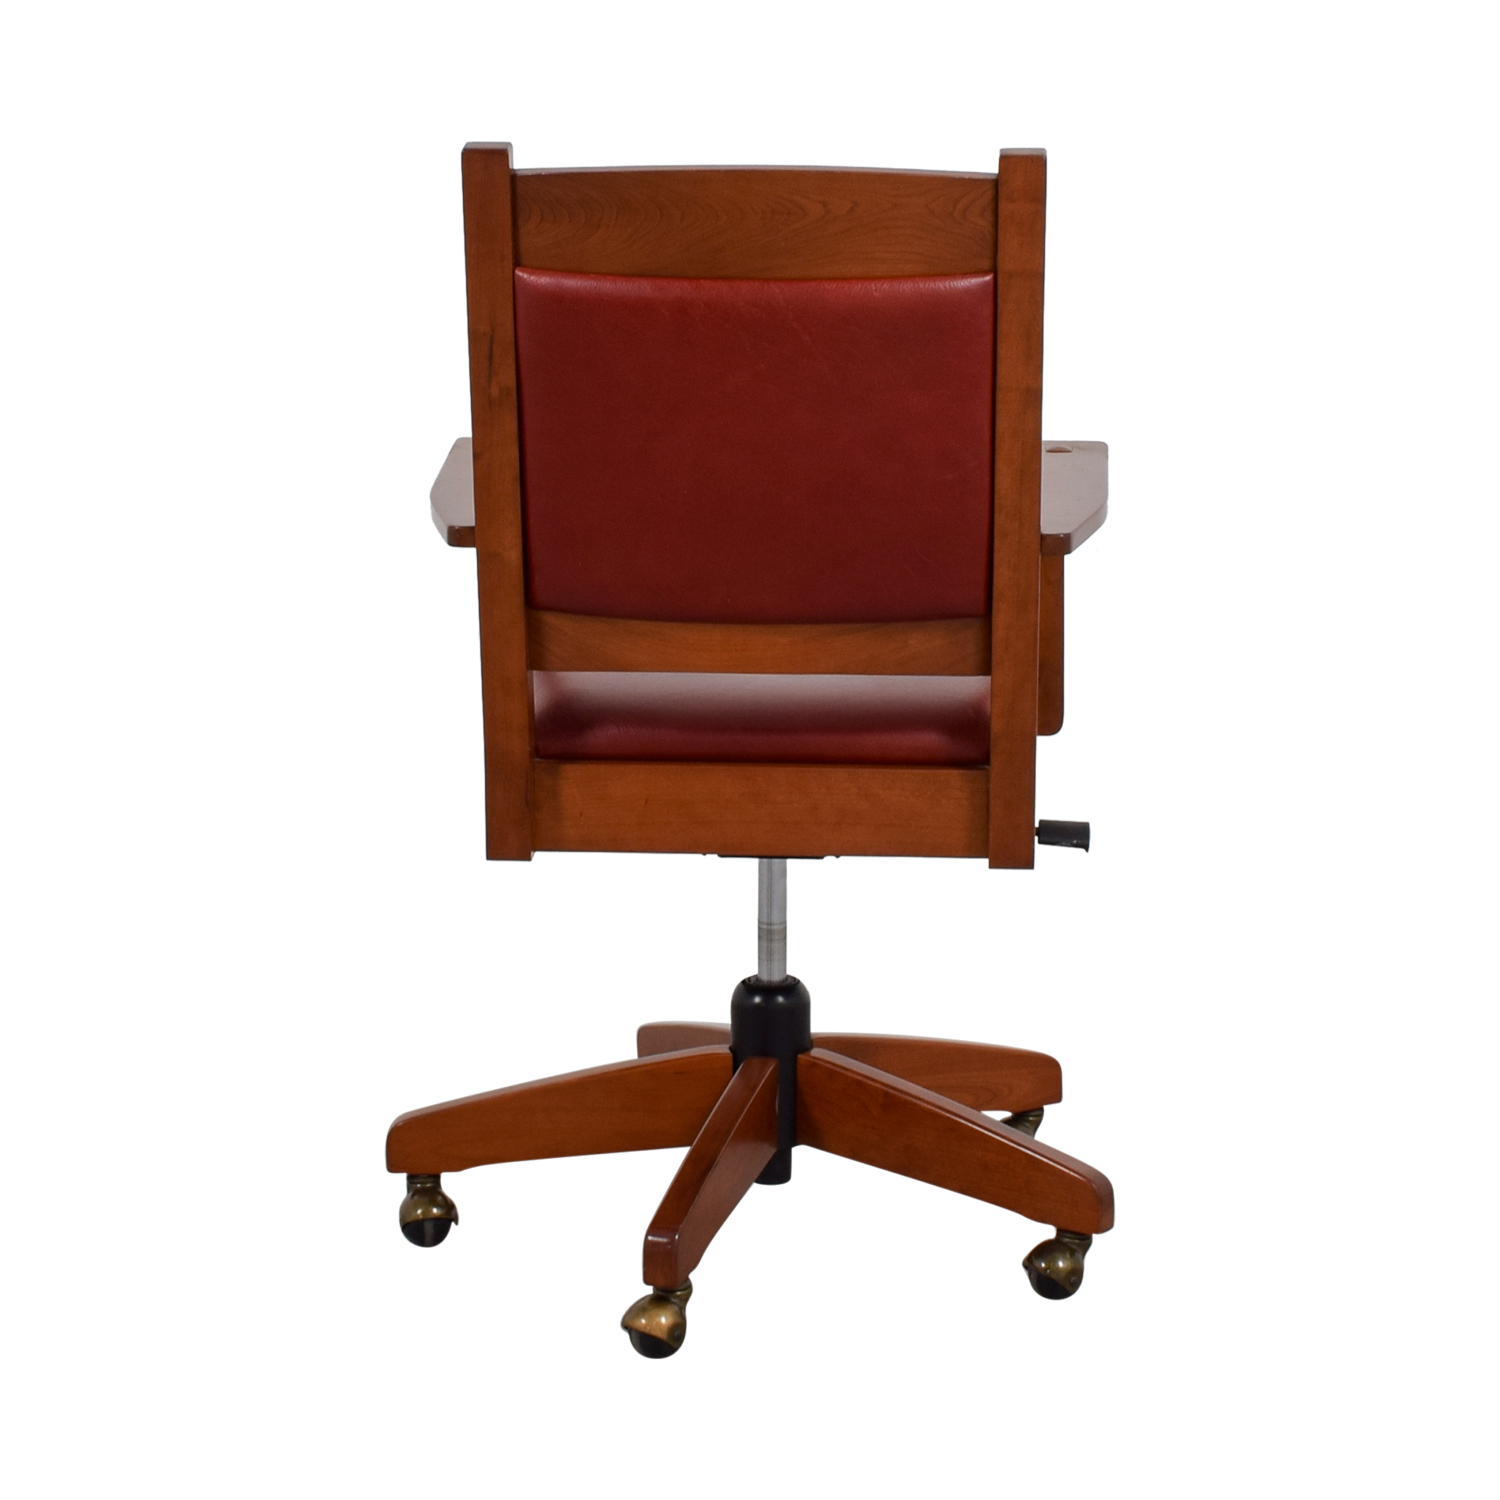 Stickley Furniture Stickley Furniture Red Leather Desk Chair for sale